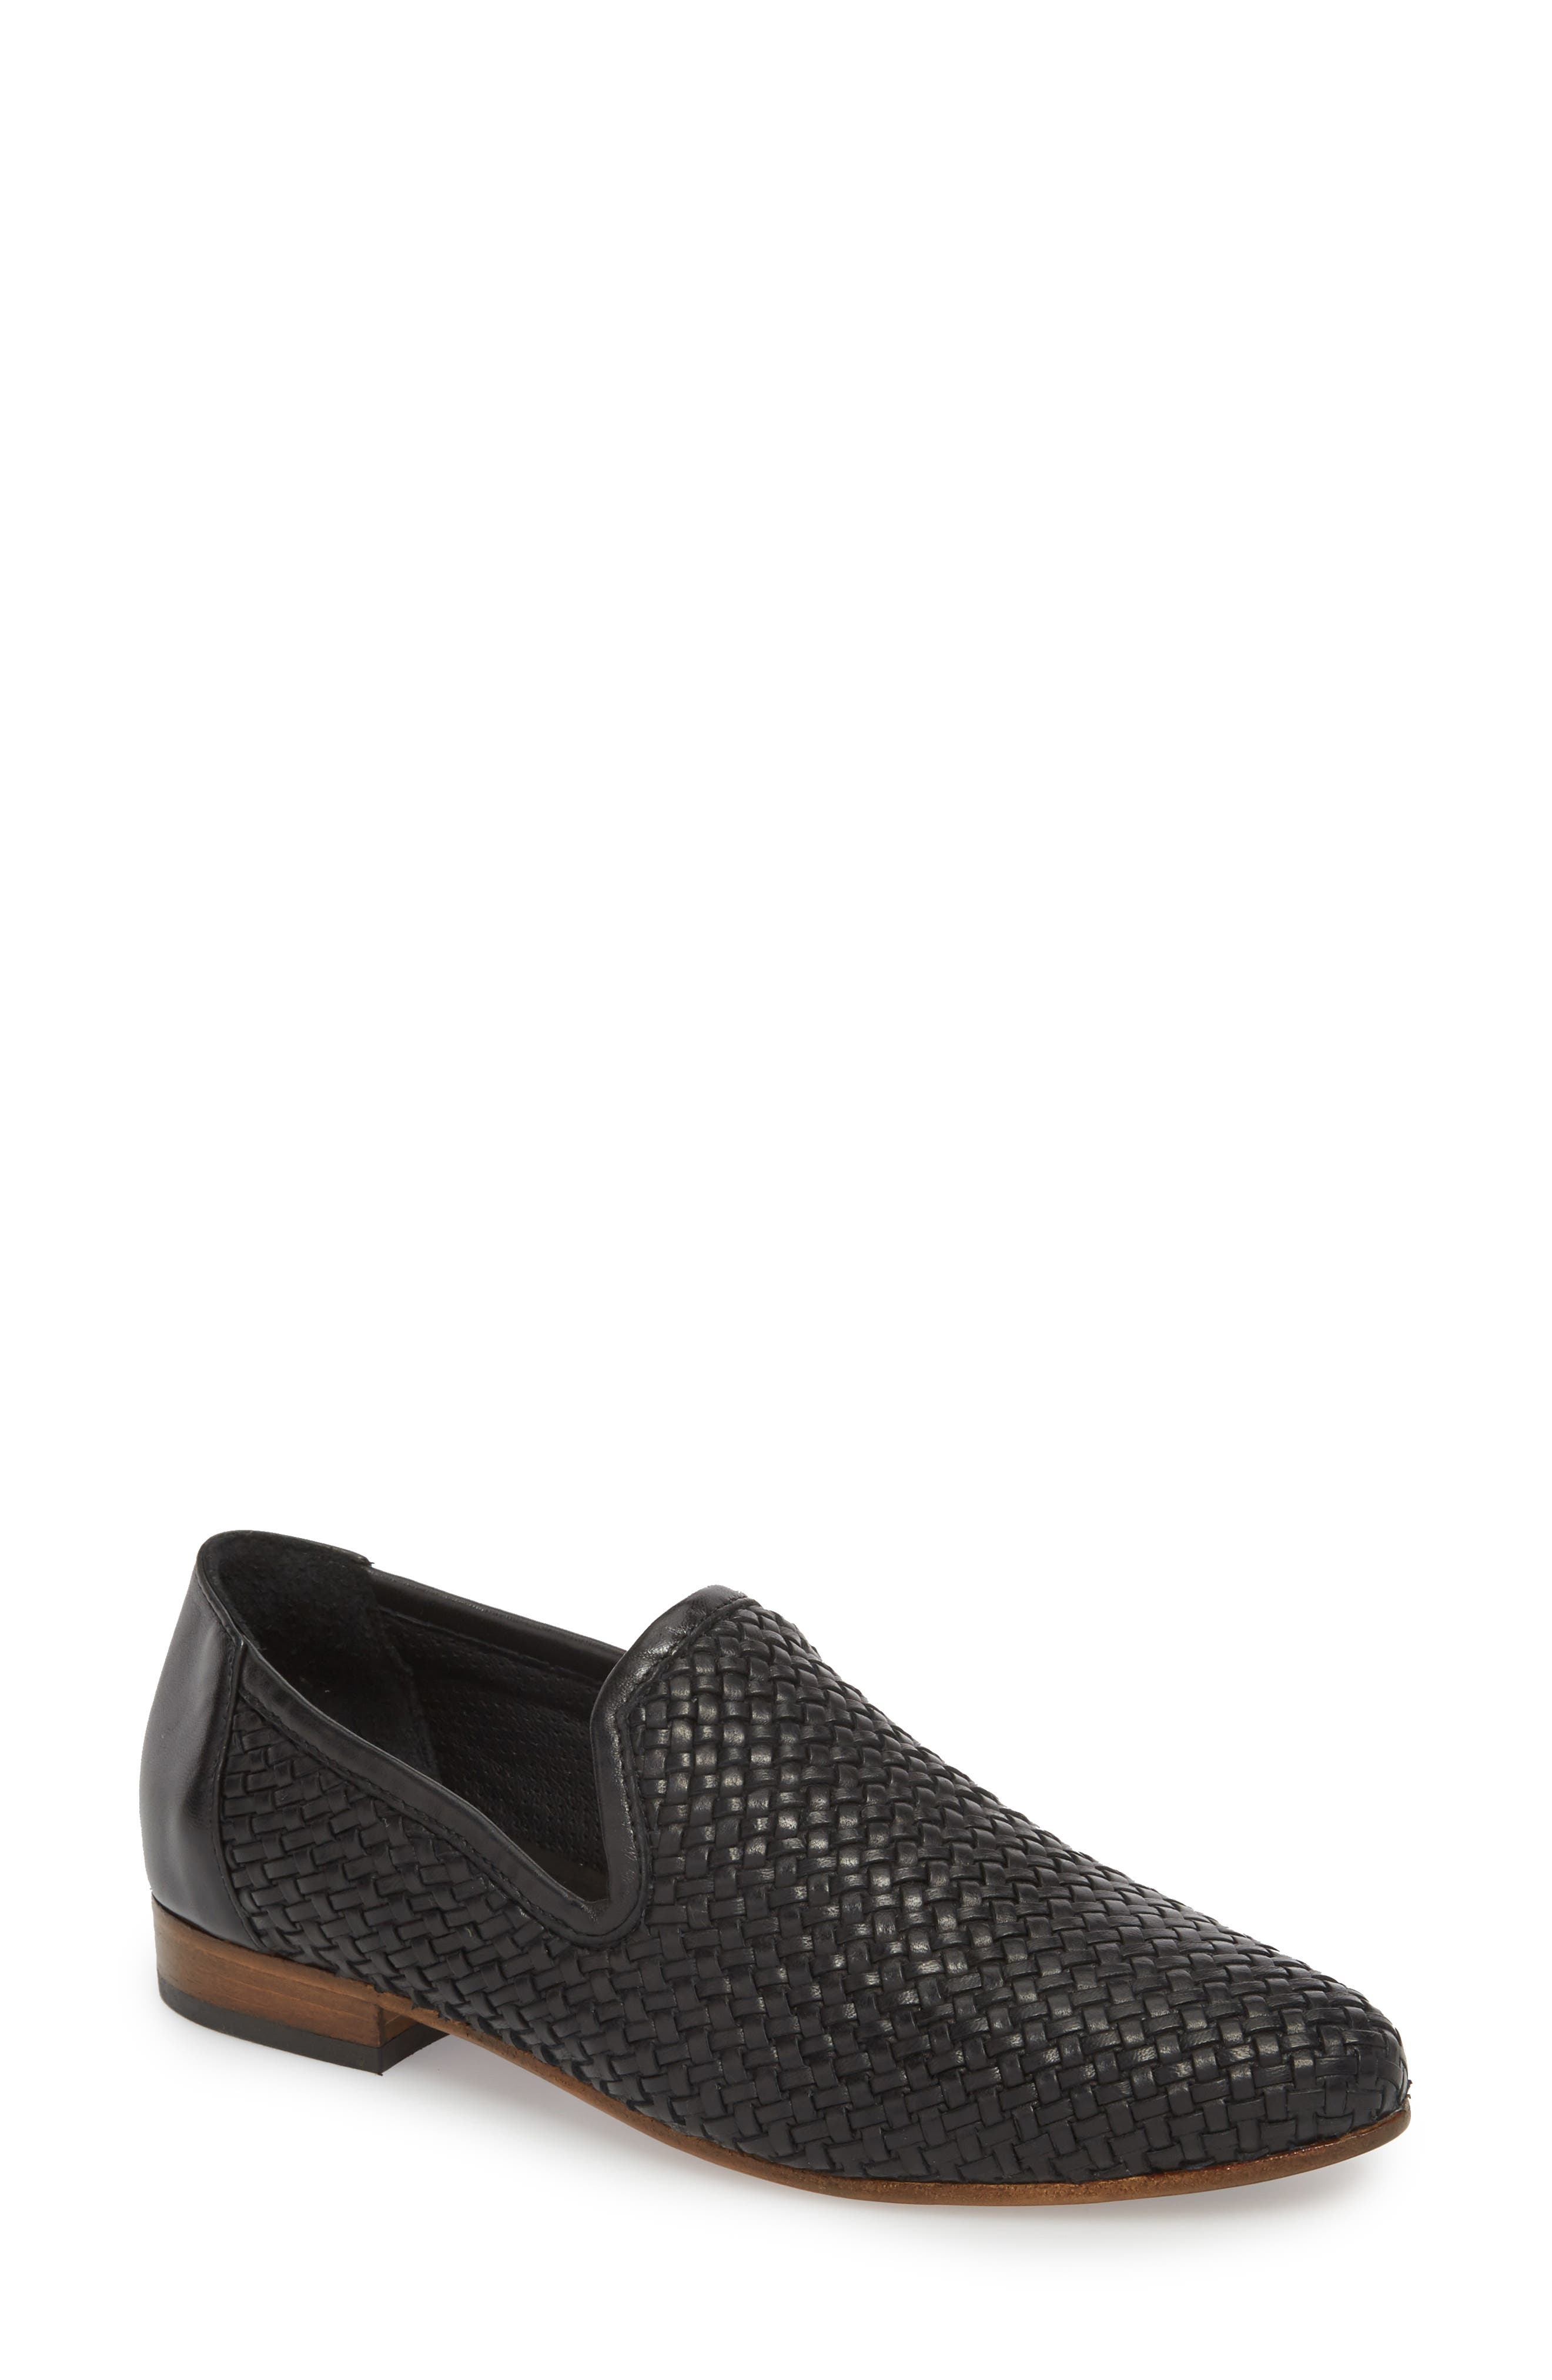 Yara Woven Slip-On Loafer,                         Main,                         color, Onyx Leather